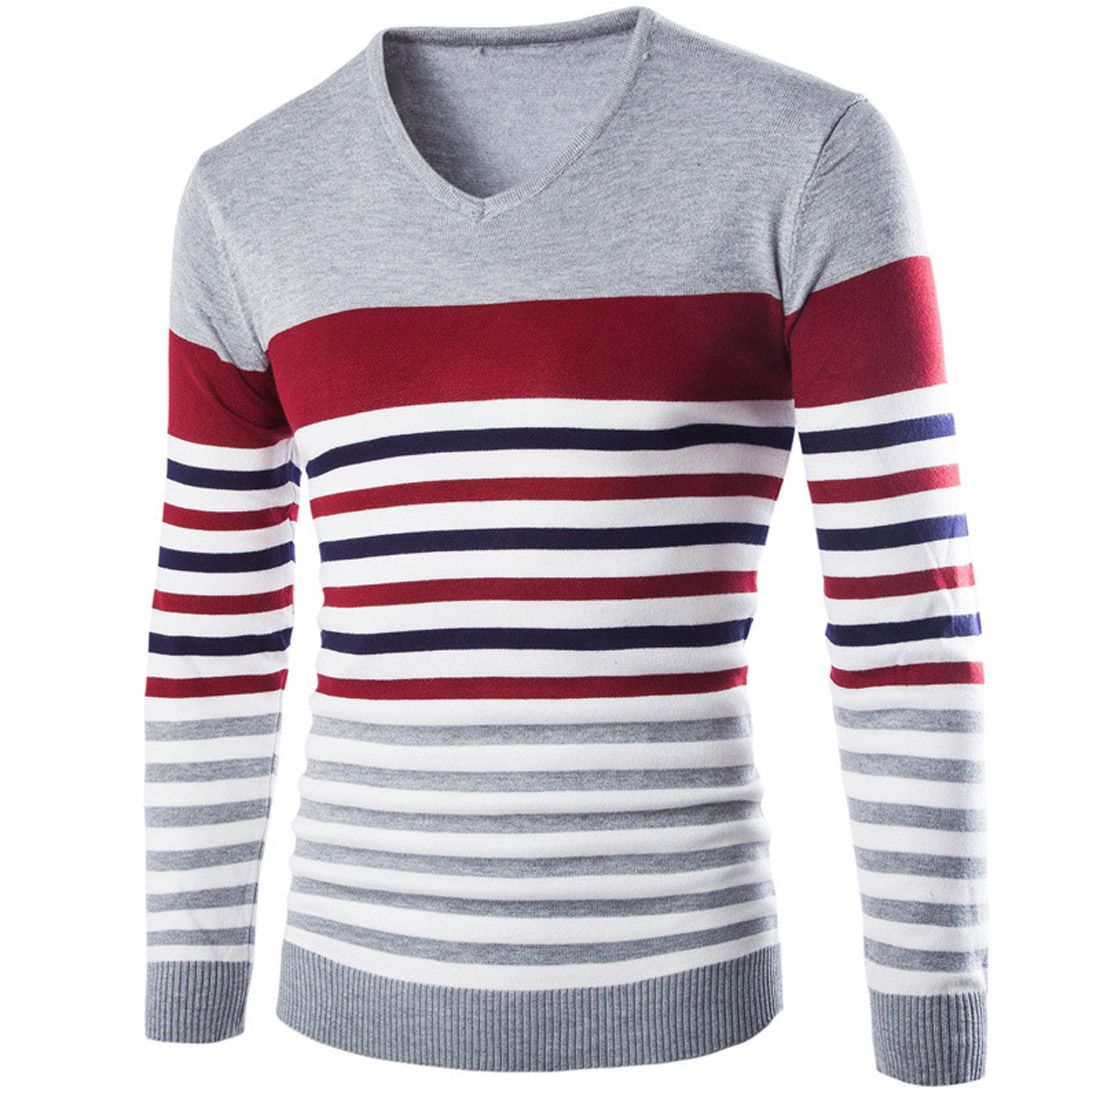 2017 Spring Fashion Knitting Seater Pullover V-Neck Striped Tees ...